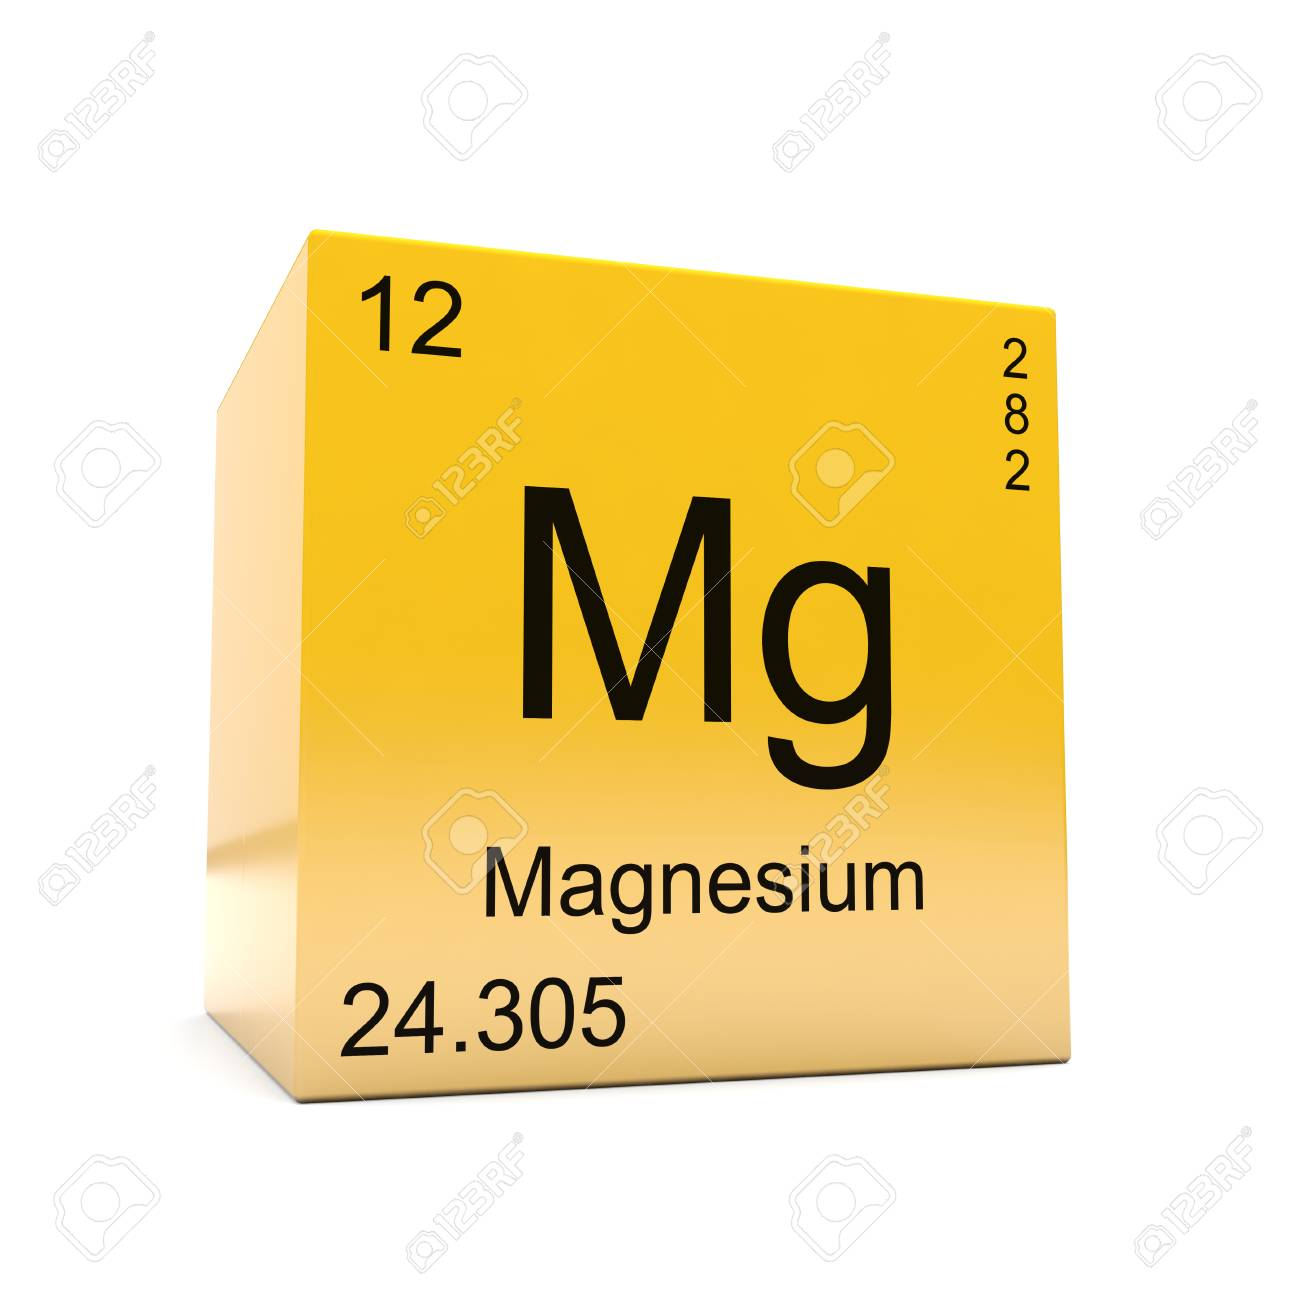 Magnesium chemical element symbol from the periodic table displayed magnesium chemical element symbol from the periodic table displayed on glossy yellow cube stock photo urtaz Image collections